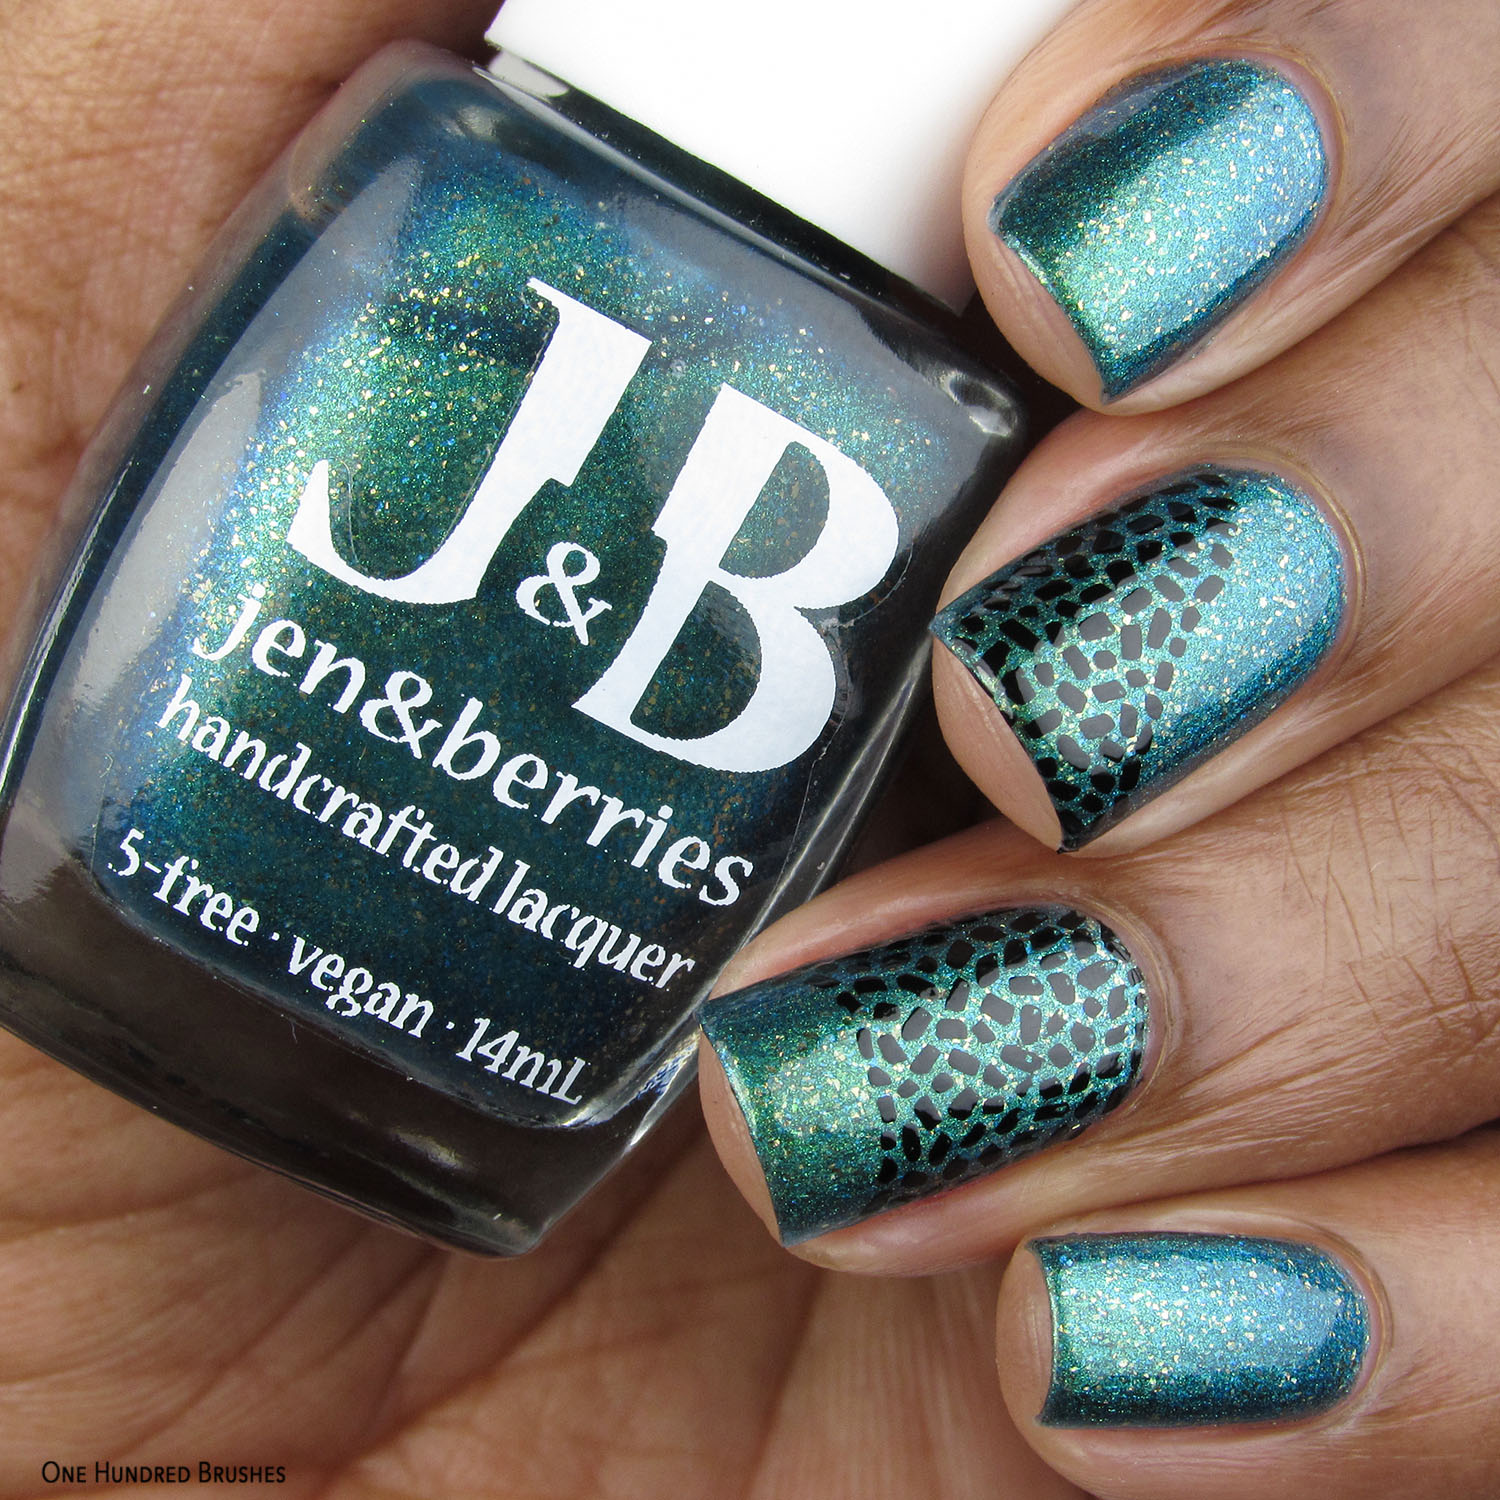 Nail Art - Bottle Front - Jen & Berries - Fallout Polished Gamers February 2020